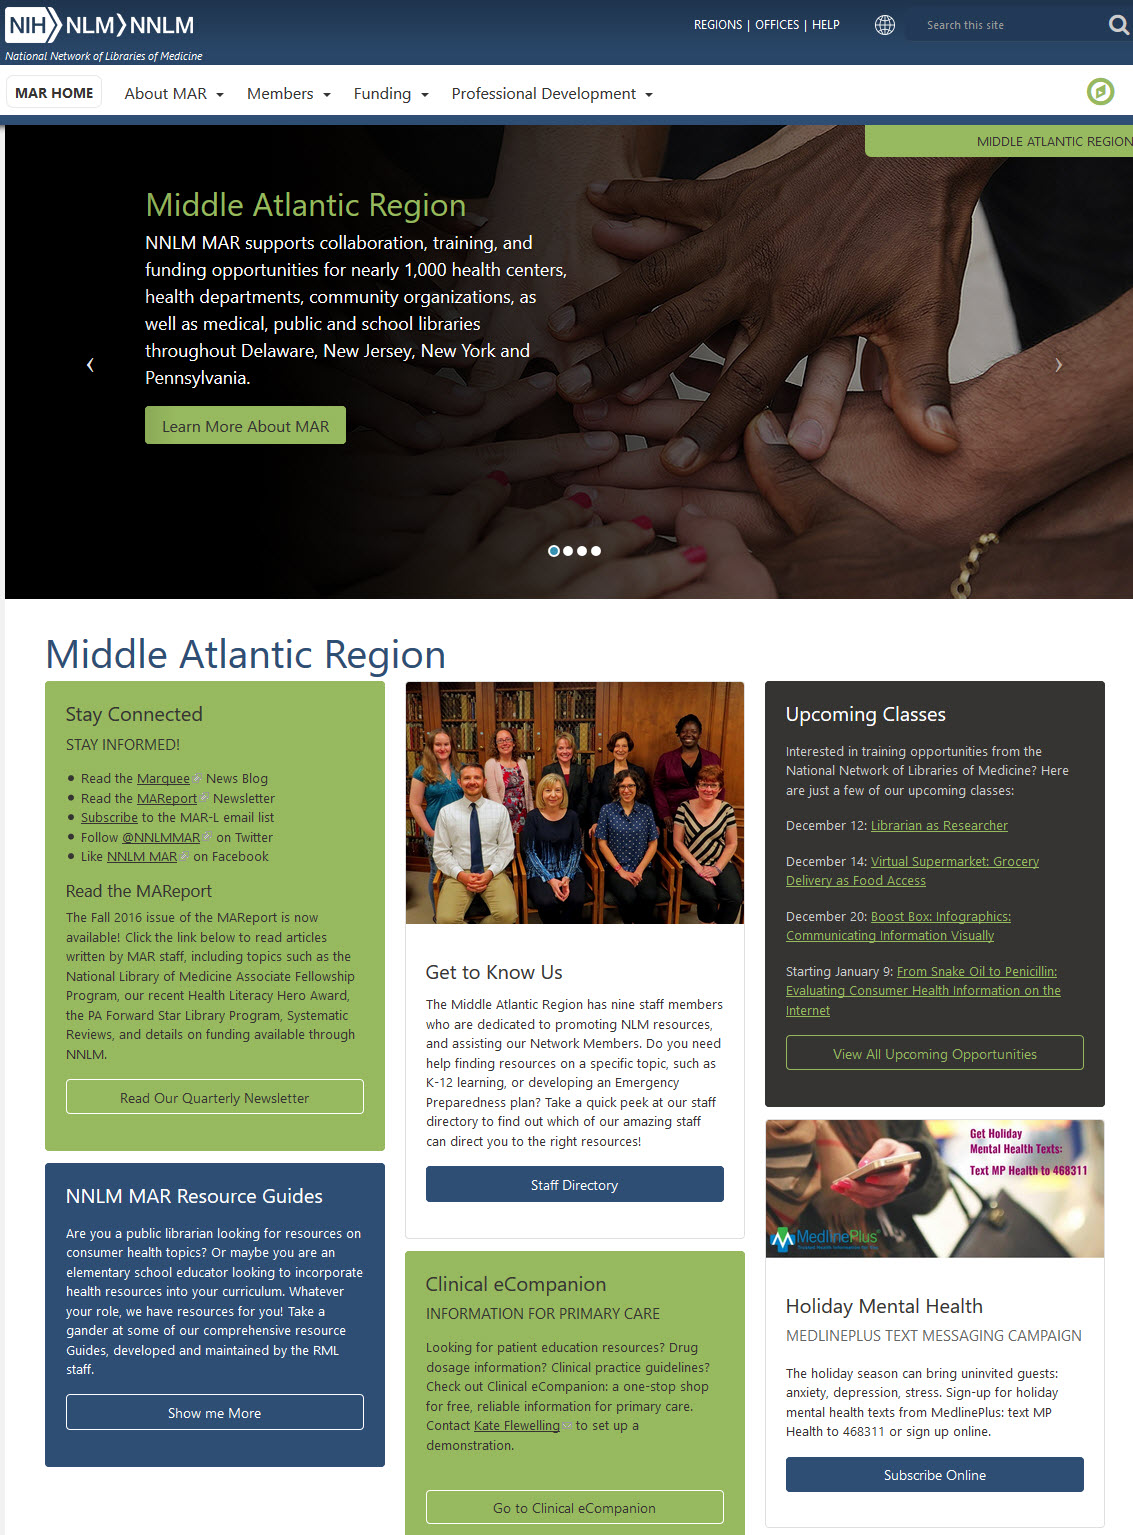 screenshot of NNLM MAR new website homepage